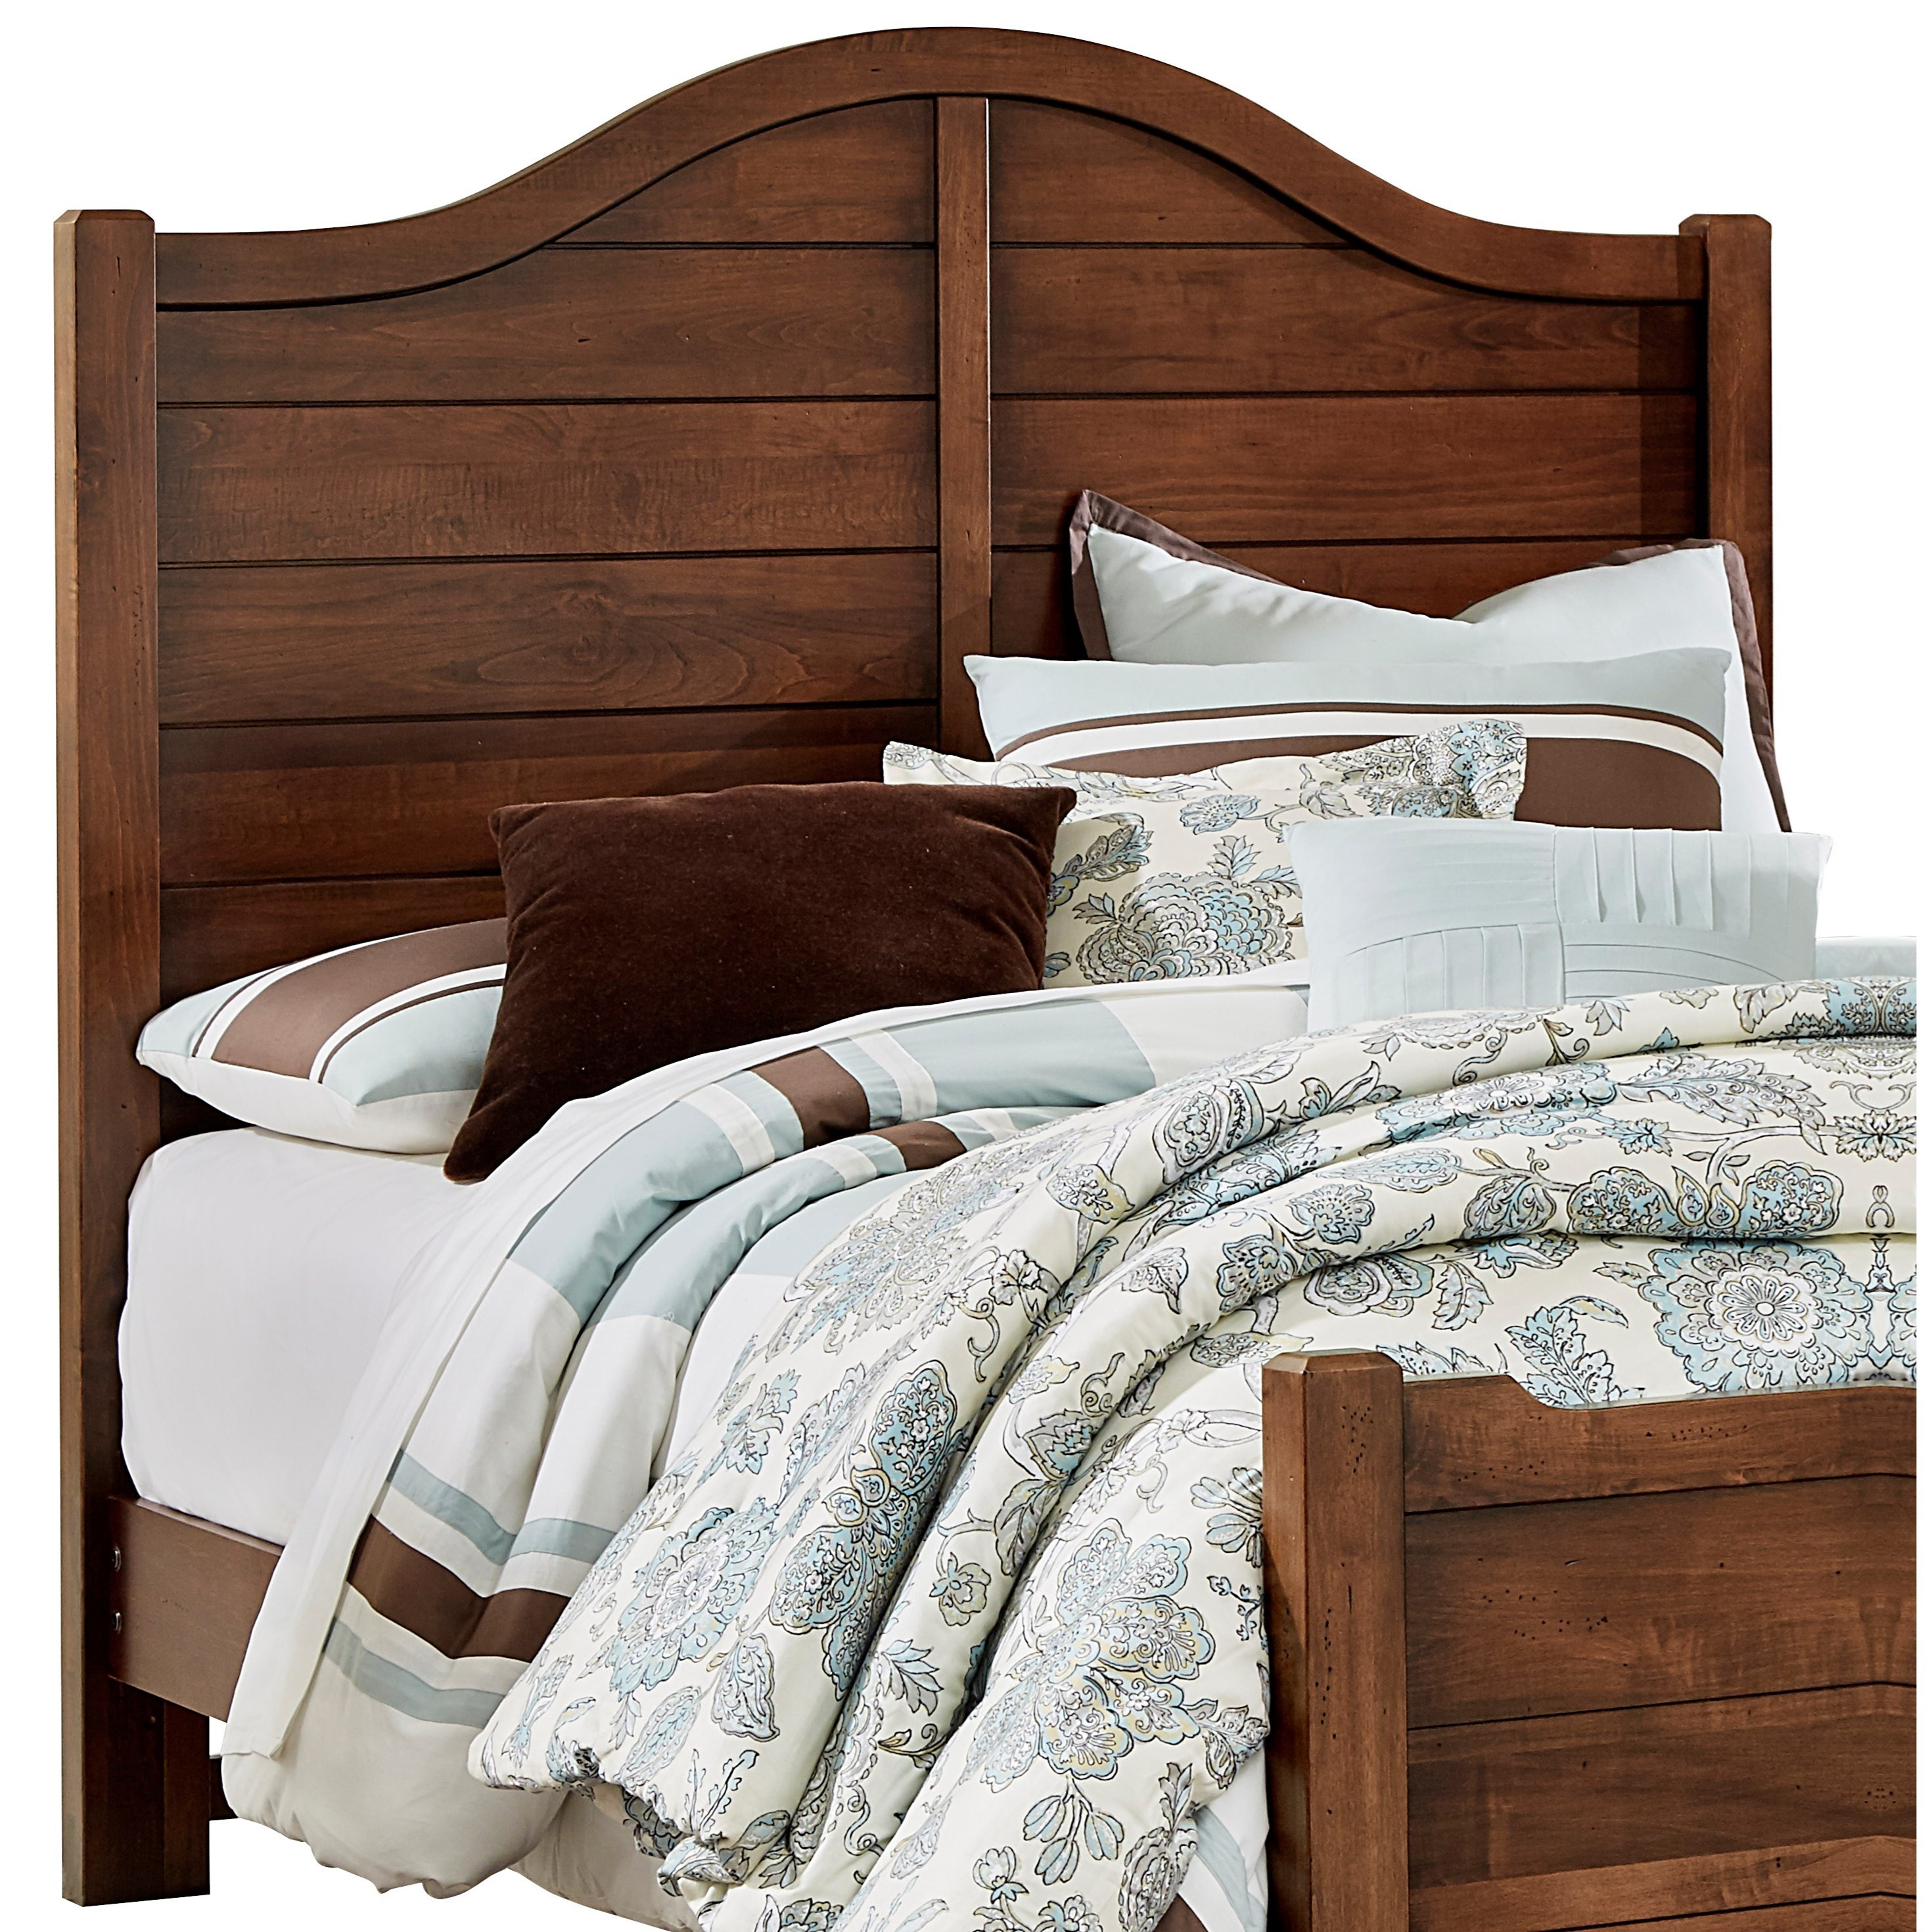 vaughan bassett american maple solid wood queen shiplap. Black Bedroom Furniture Sets. Home Design Ideas